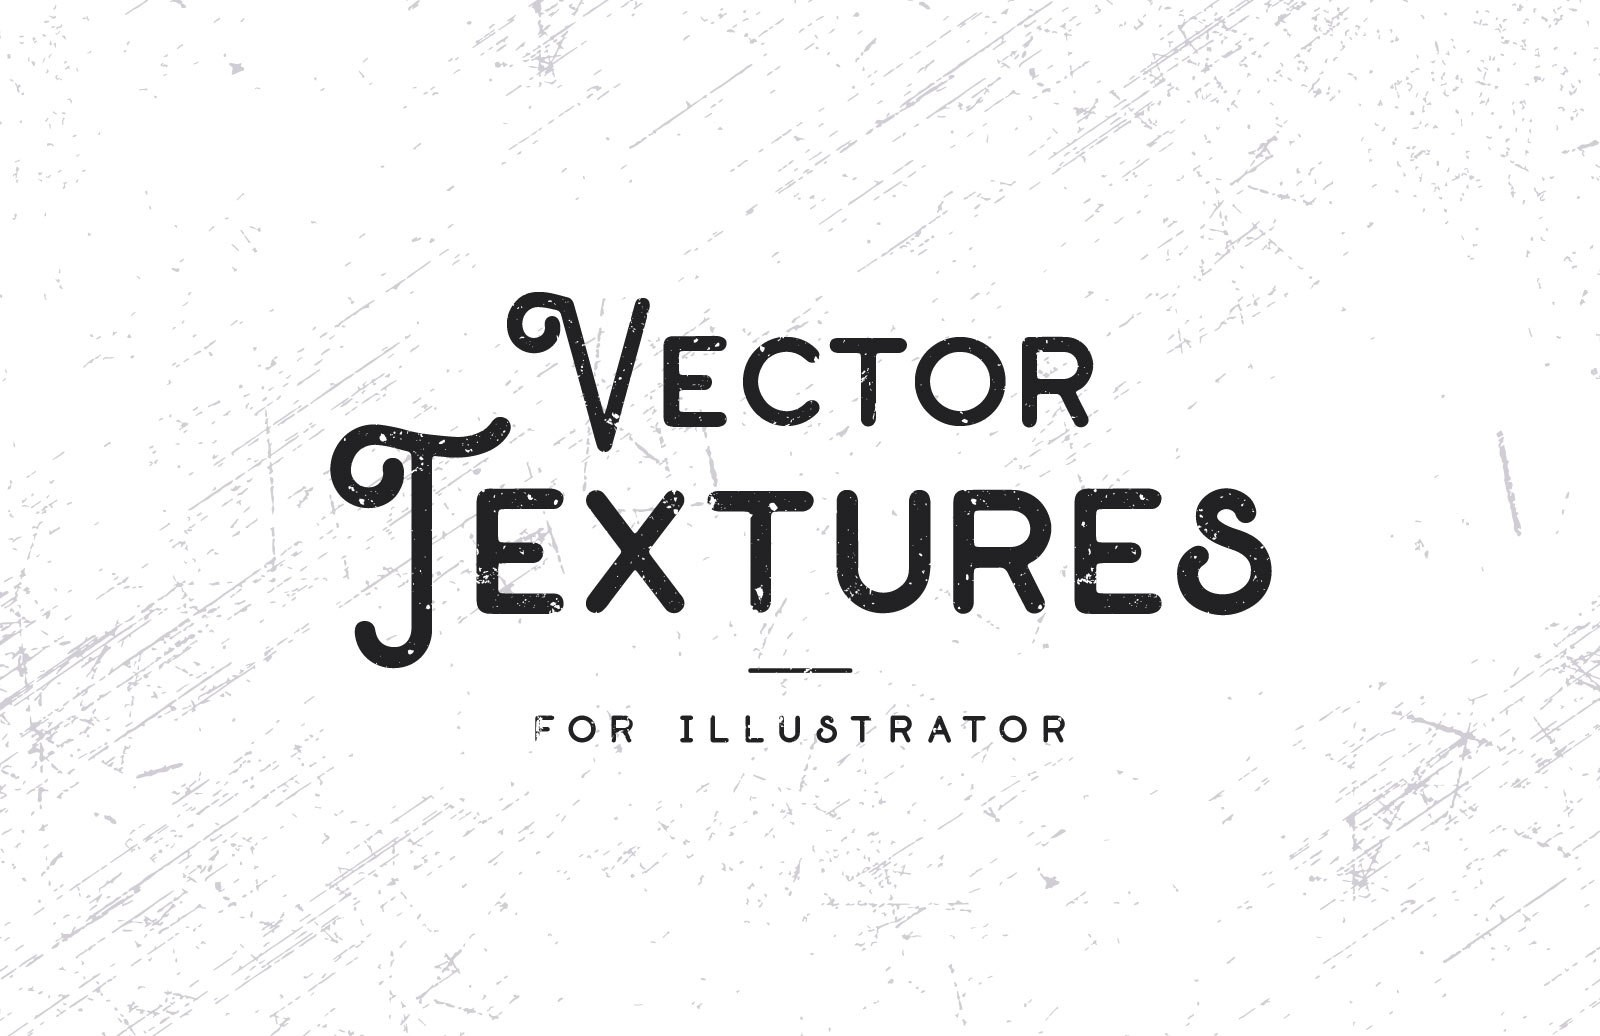 Free Illustrator Vector Textures